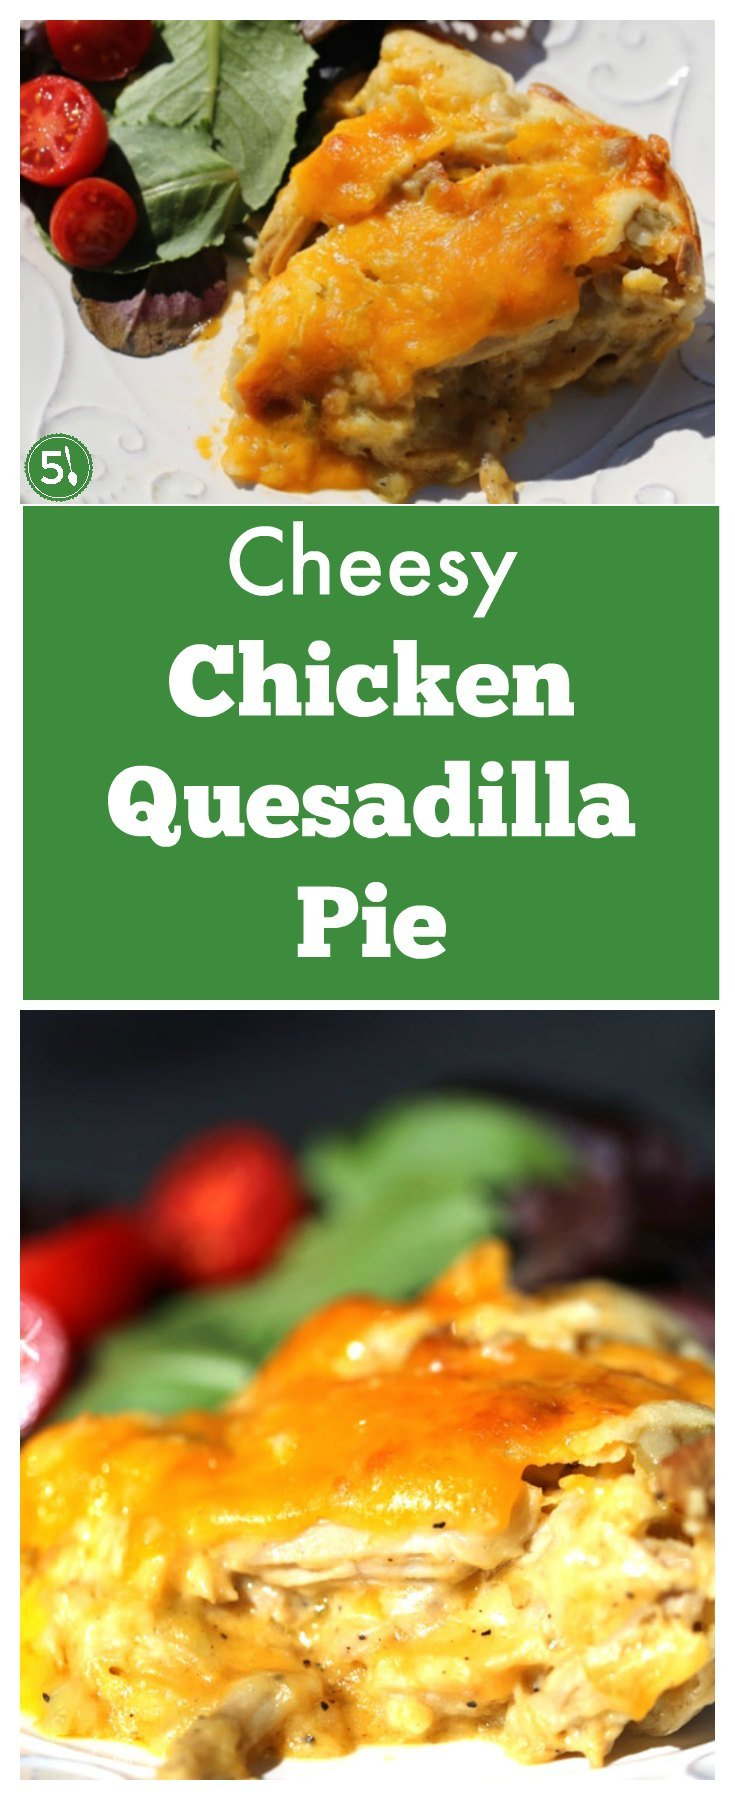 This cheesy chicken quesadilla pie is unique with its bread top covering chicken, cheese and green chile goodness beneath.  This is a meal that is easy to whip up for dinner, but tastes like you've spent hours in the kitchen.